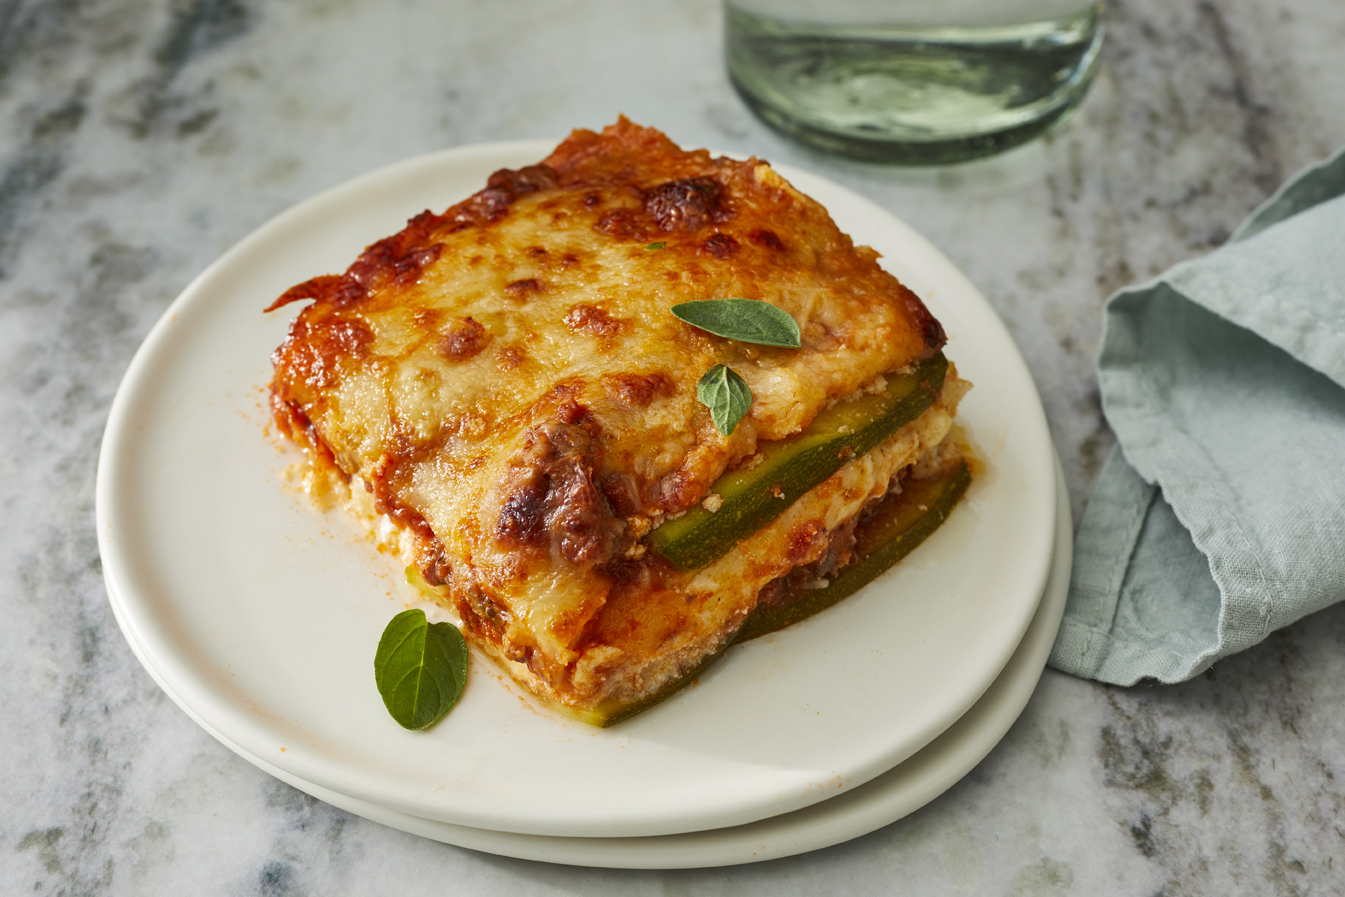 single plated slice of low carb zucchini lasagna